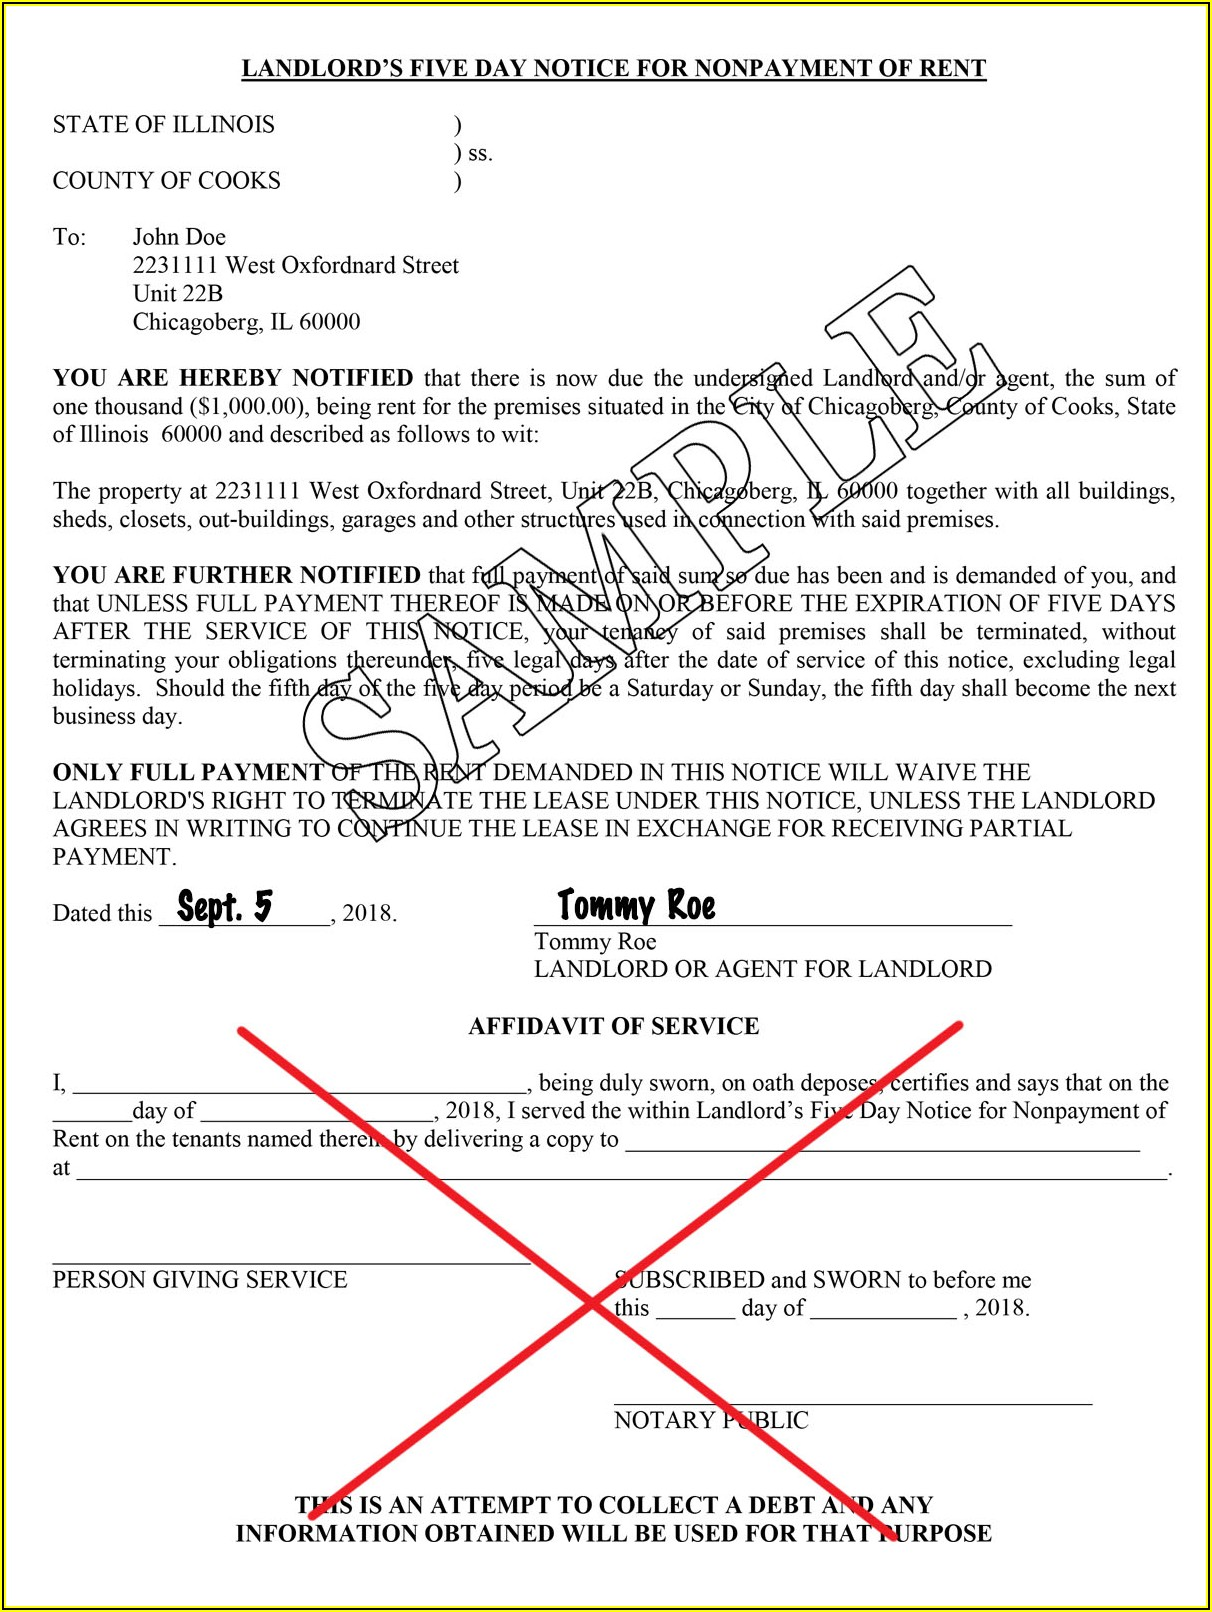 Illinois Landlord Eviction Notice Form